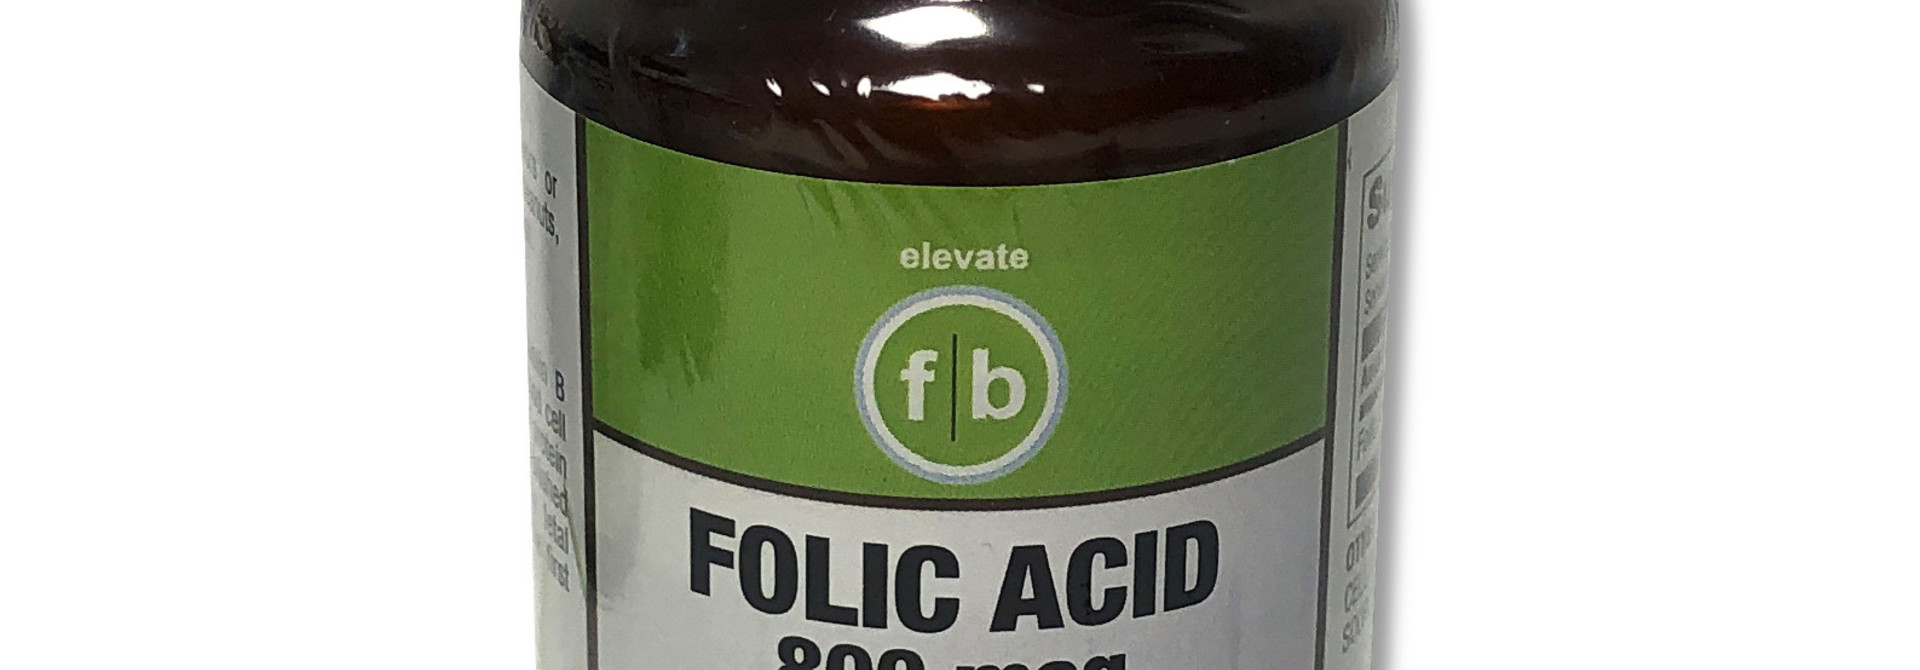 Folic Acid 800mg/100 Vegetarian Tablets